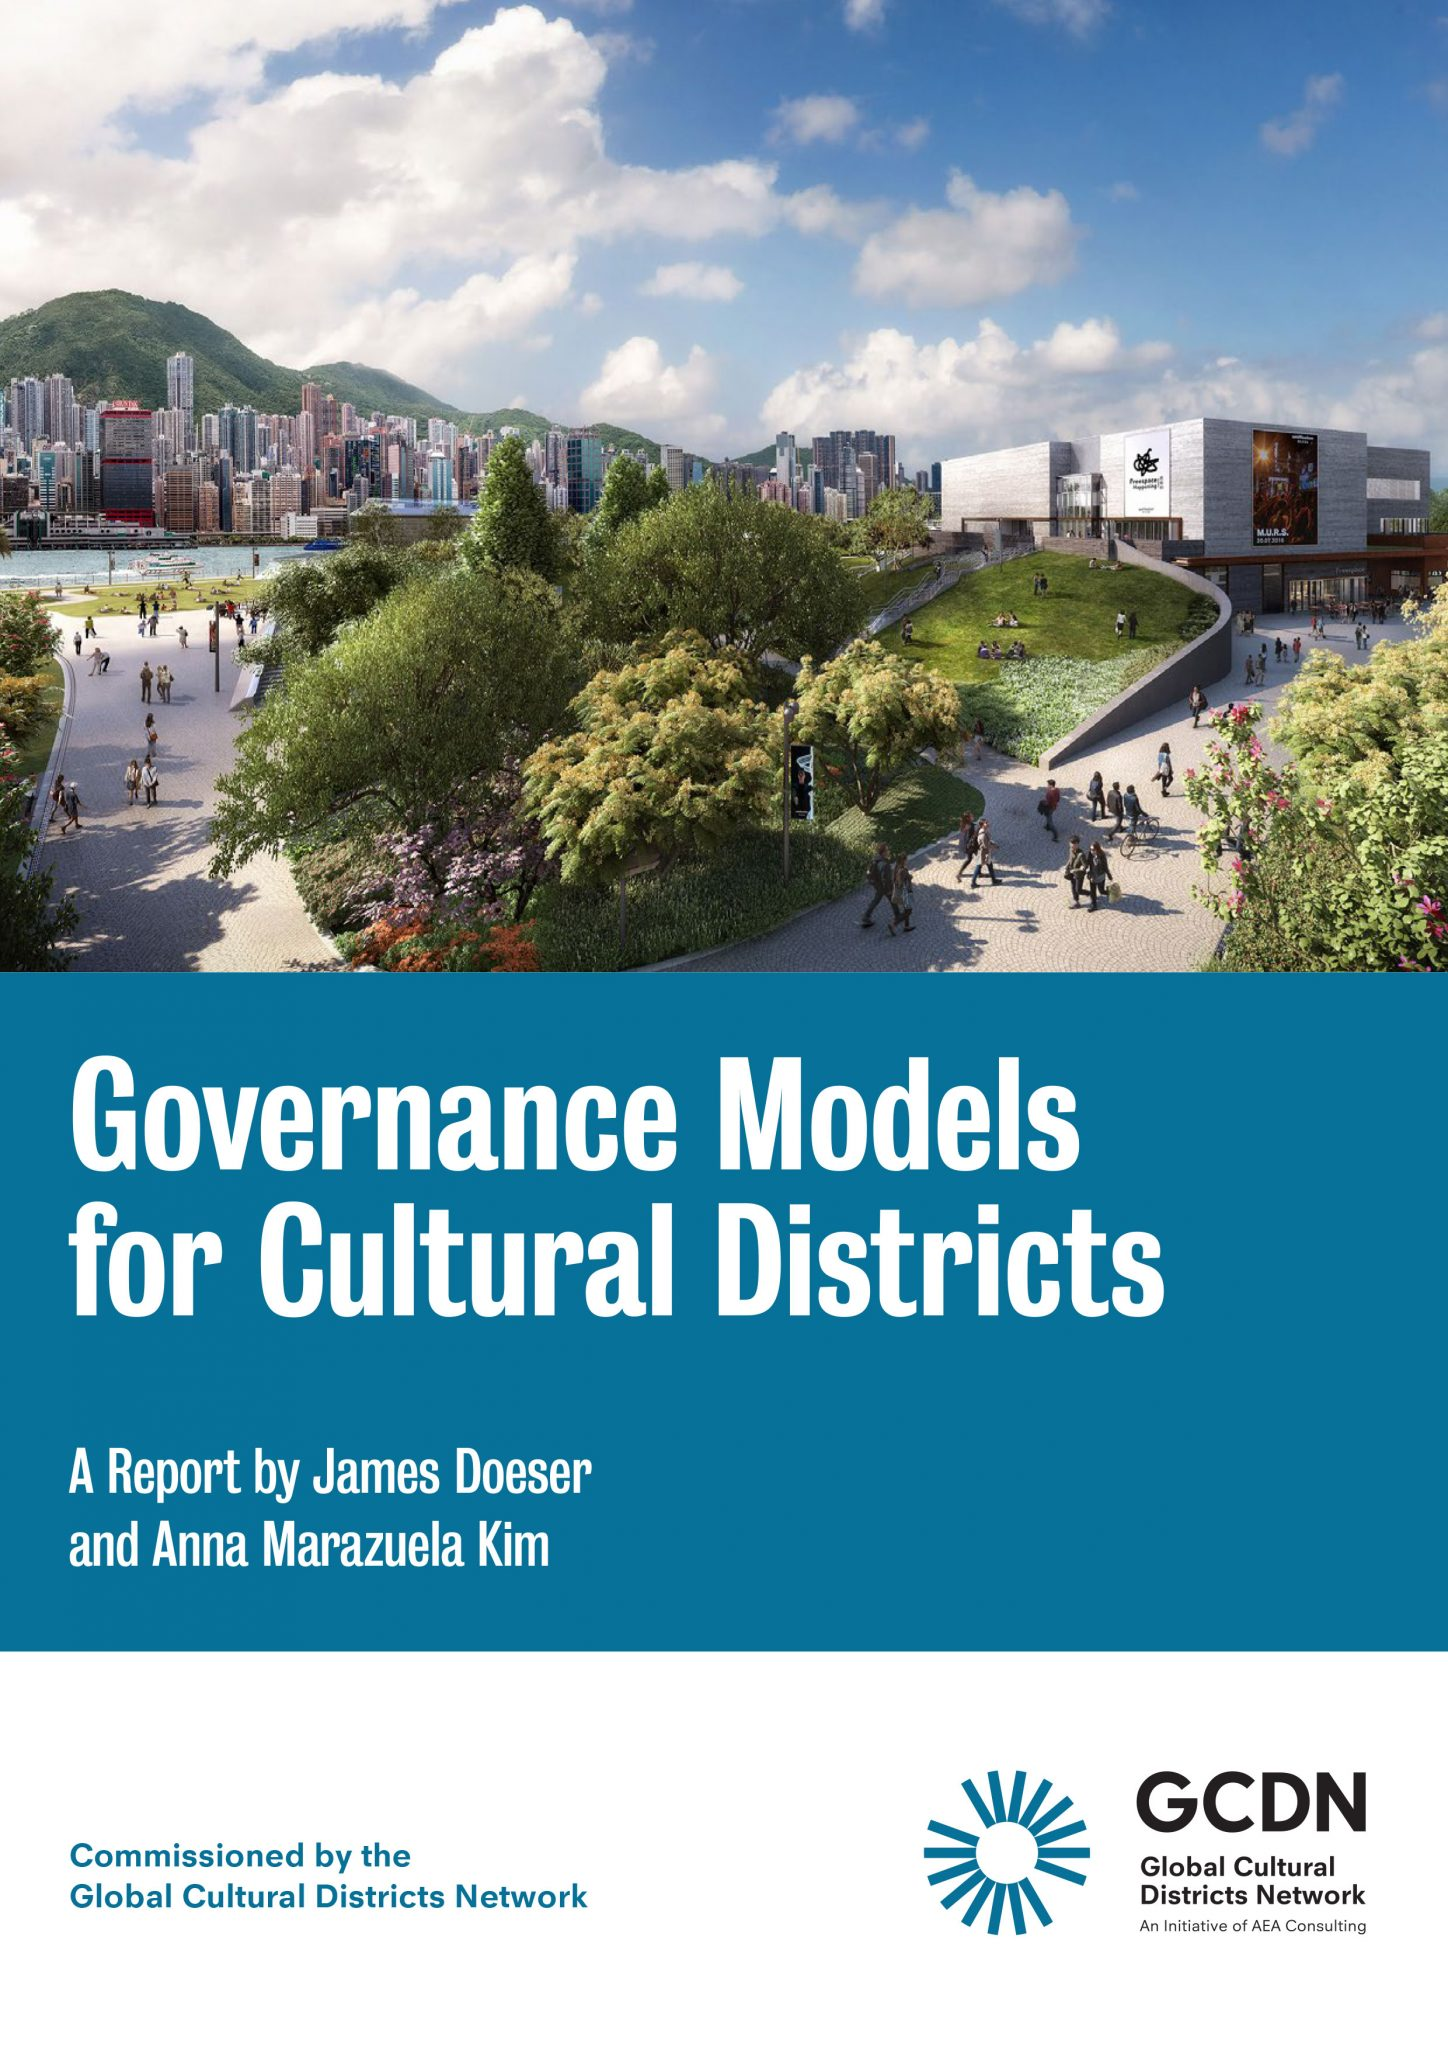 GCDN-Governance-Models-for-Cultural-Districts-cover.jpg